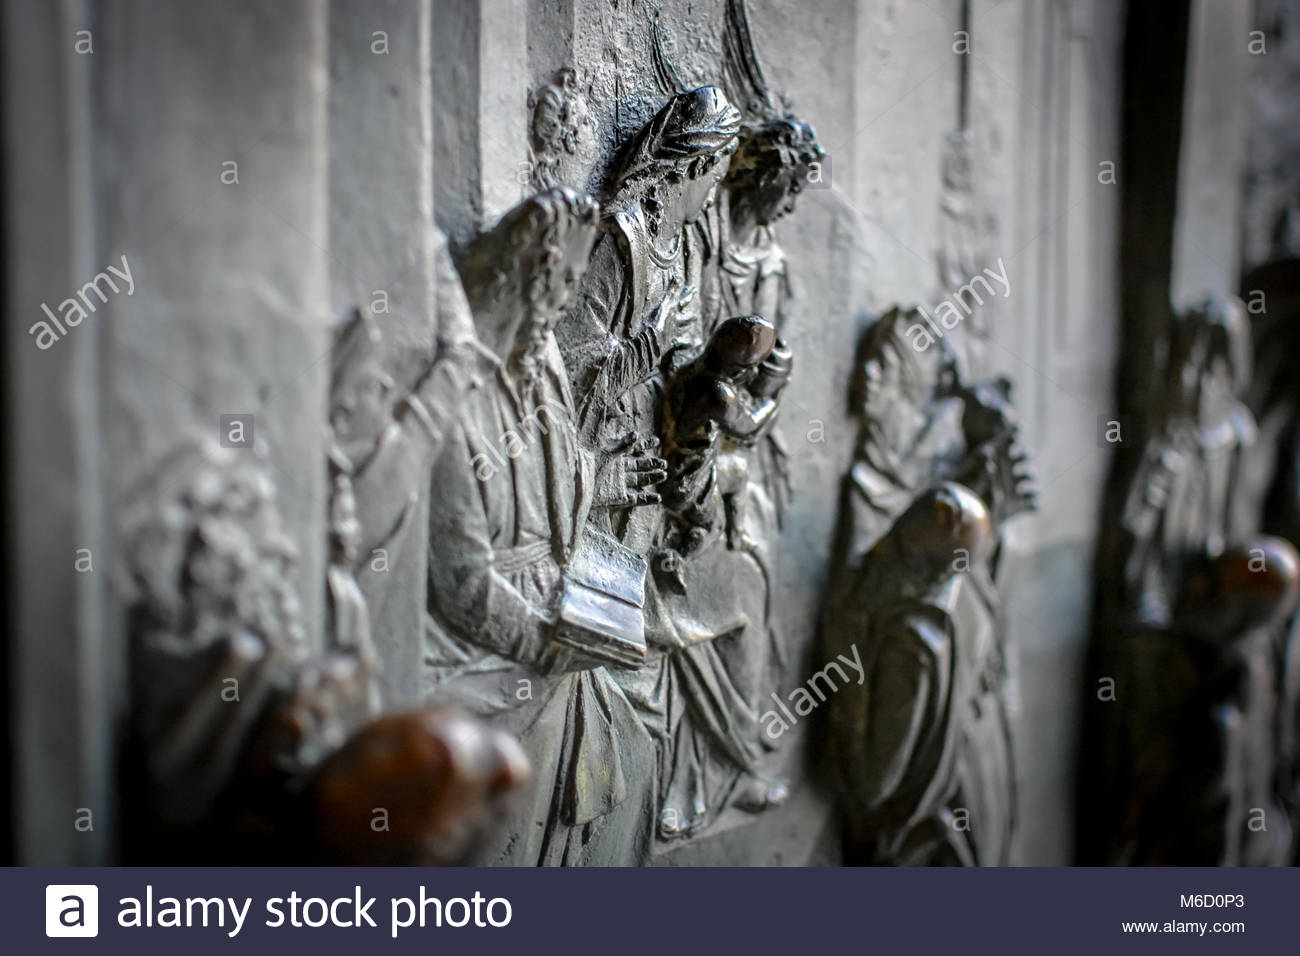 Close up of the Bronze relief sculpture of the virgin Mary by Bonanno da Pisa on the front of the Duomo cathedral - Stock Image